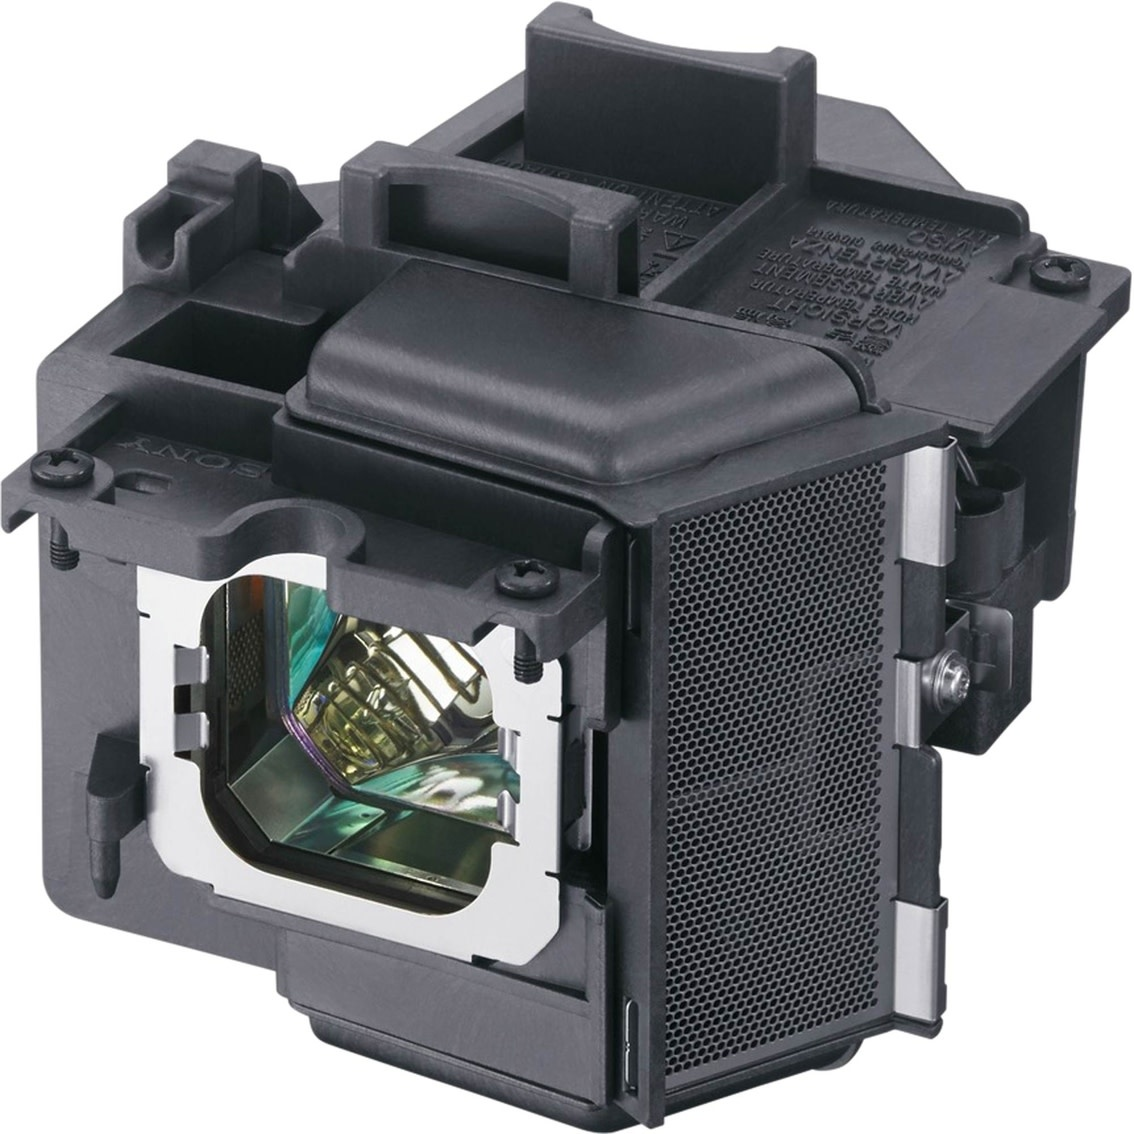 Sony LMP-H280 Replacement Lamp for the VPL-VW665ES, VPL-675ES, VPL-VW55ES, VPL-VW515, VPL-VW535